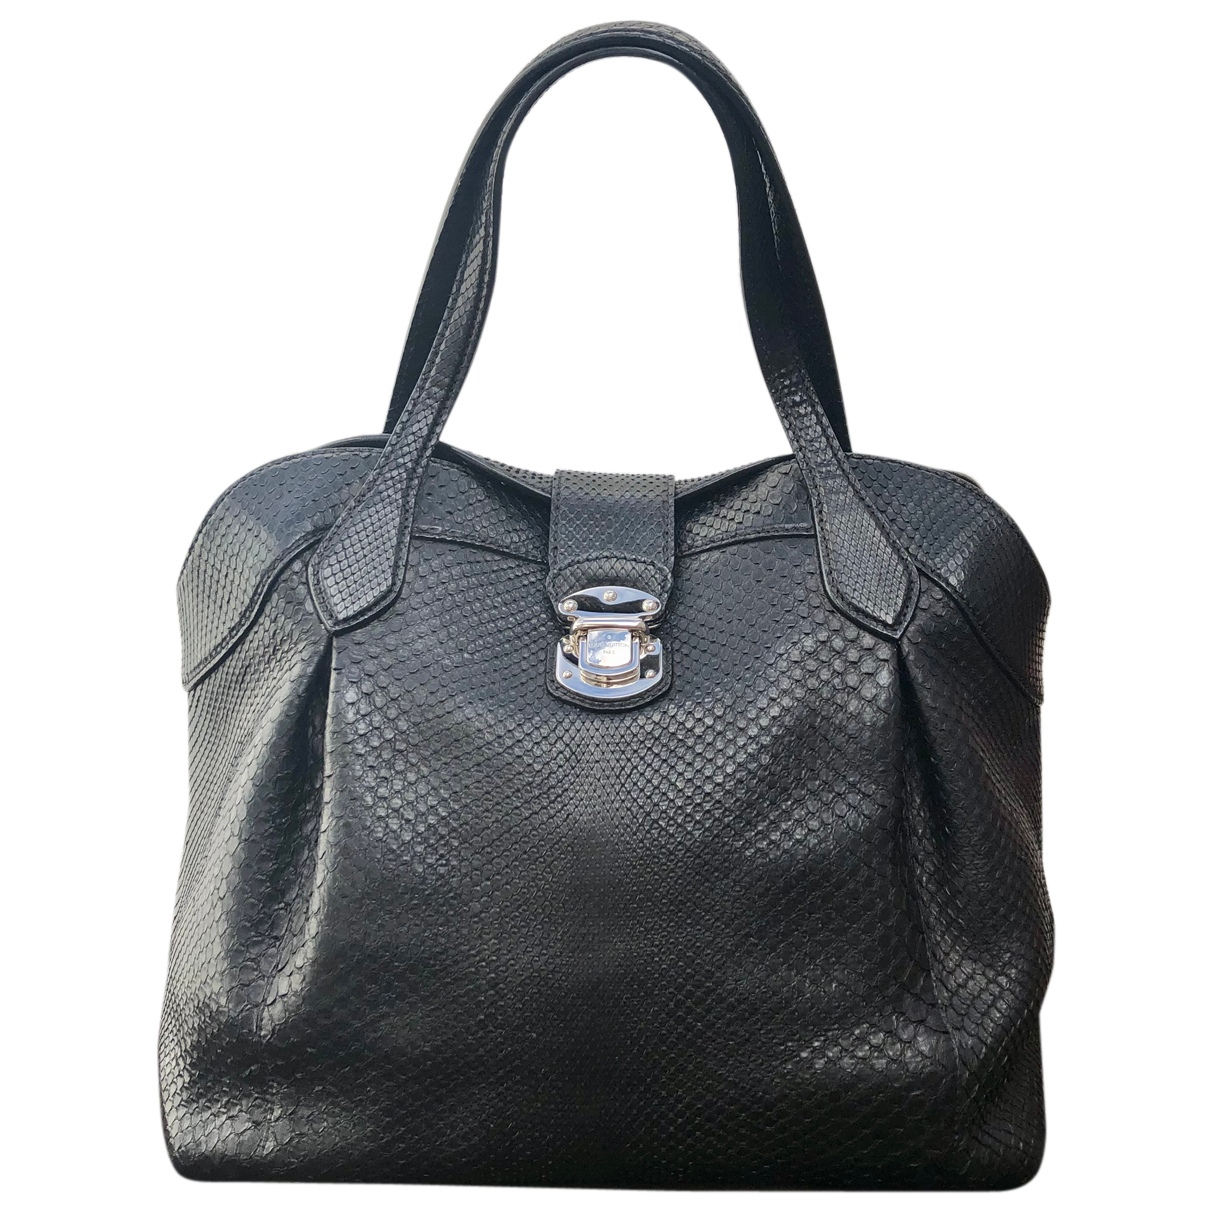 Louis Vuitton N Black Python handbag for Women N